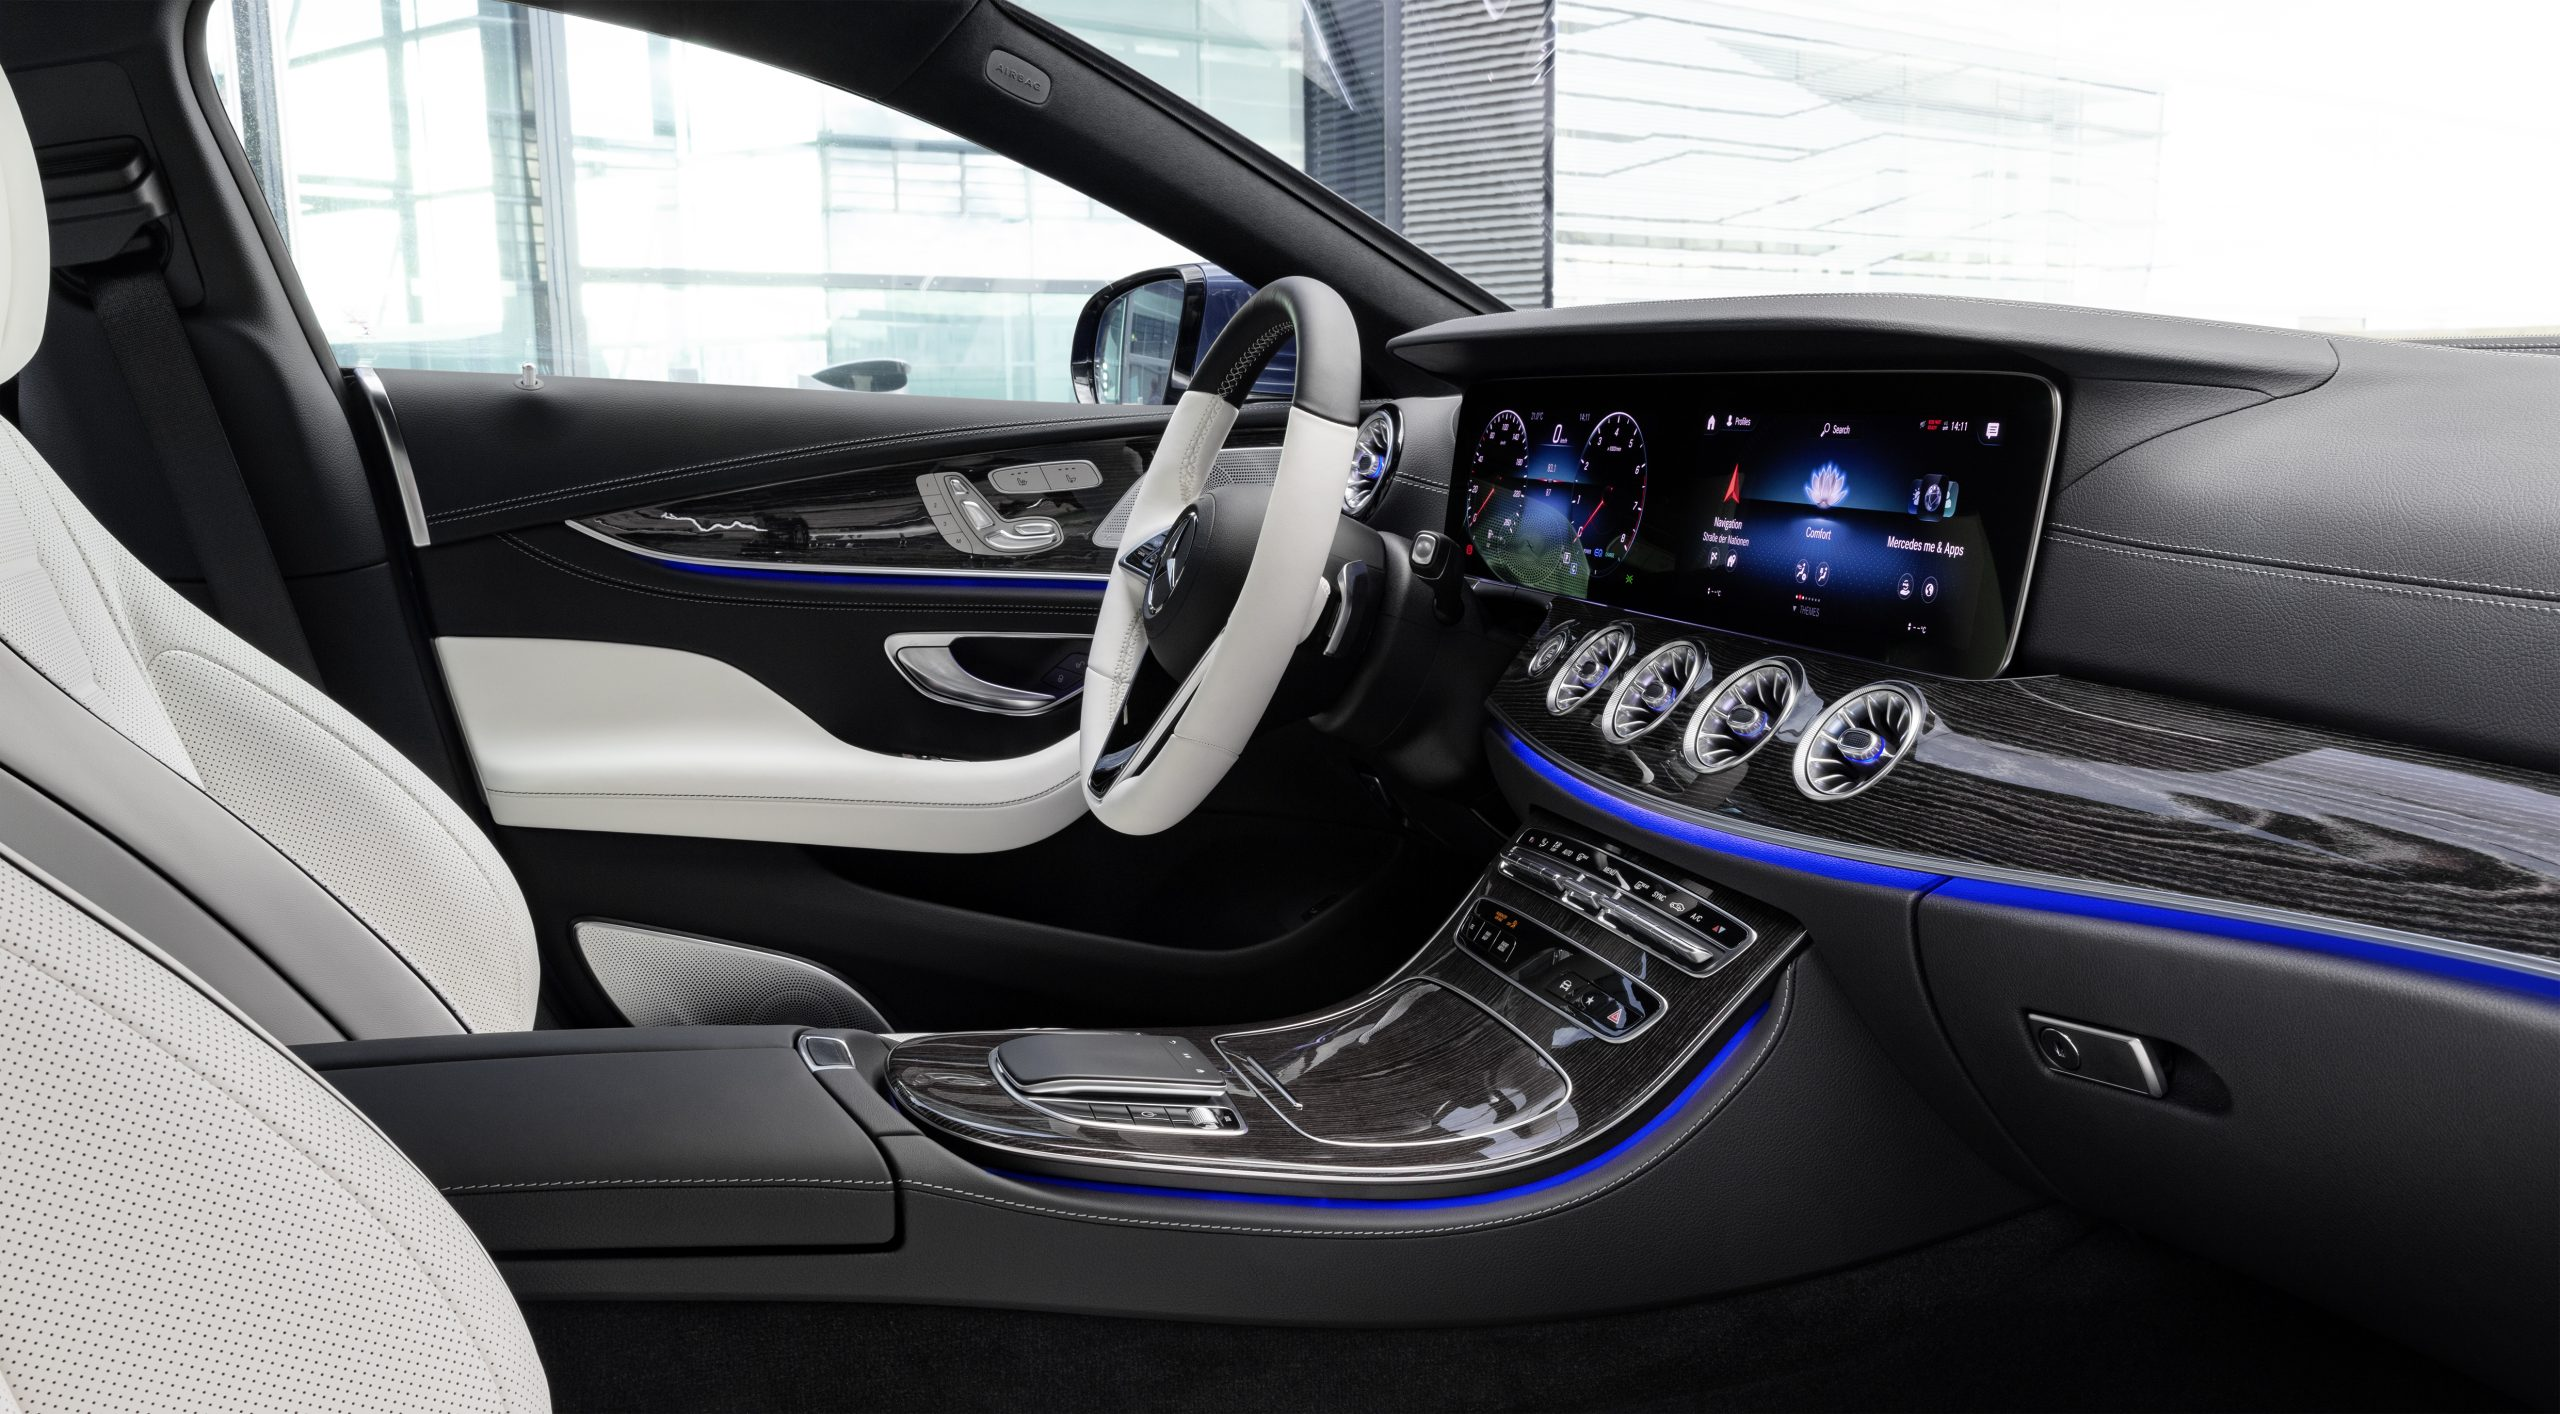 2021 Mercedes-Benz CLS 450 4Matic Coupé interior